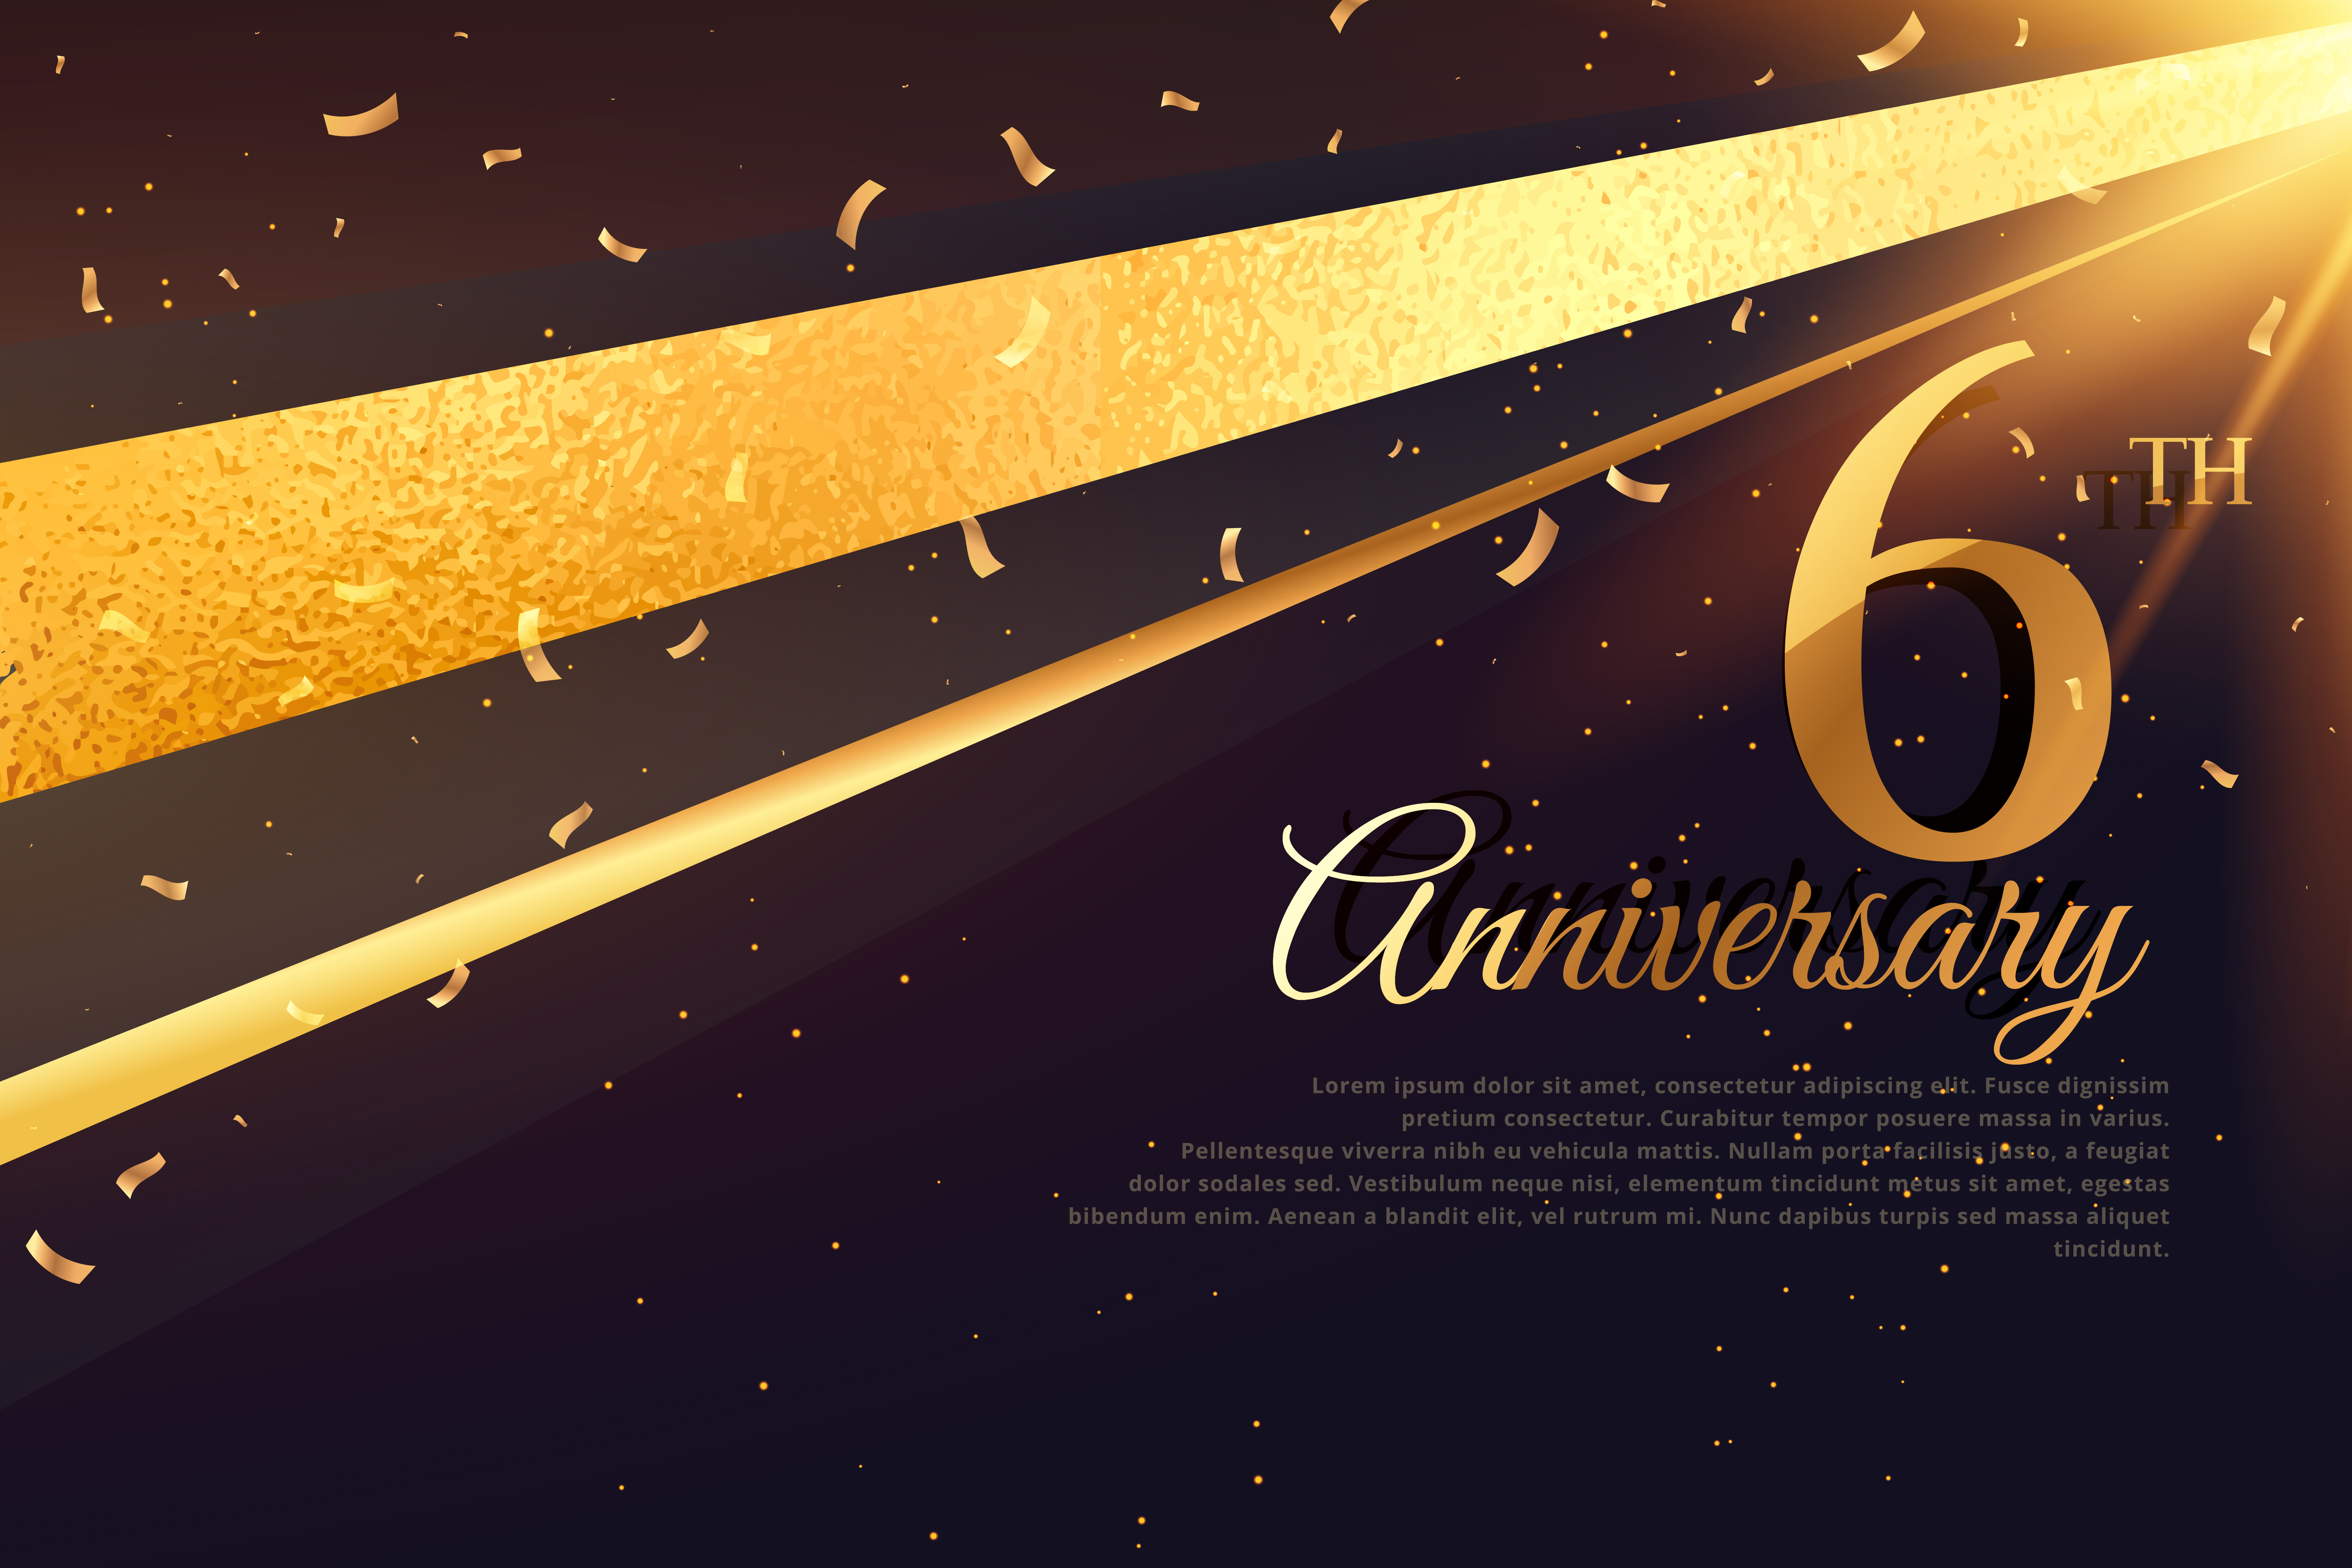 6th Anniversary Celebration Card Template Download Free